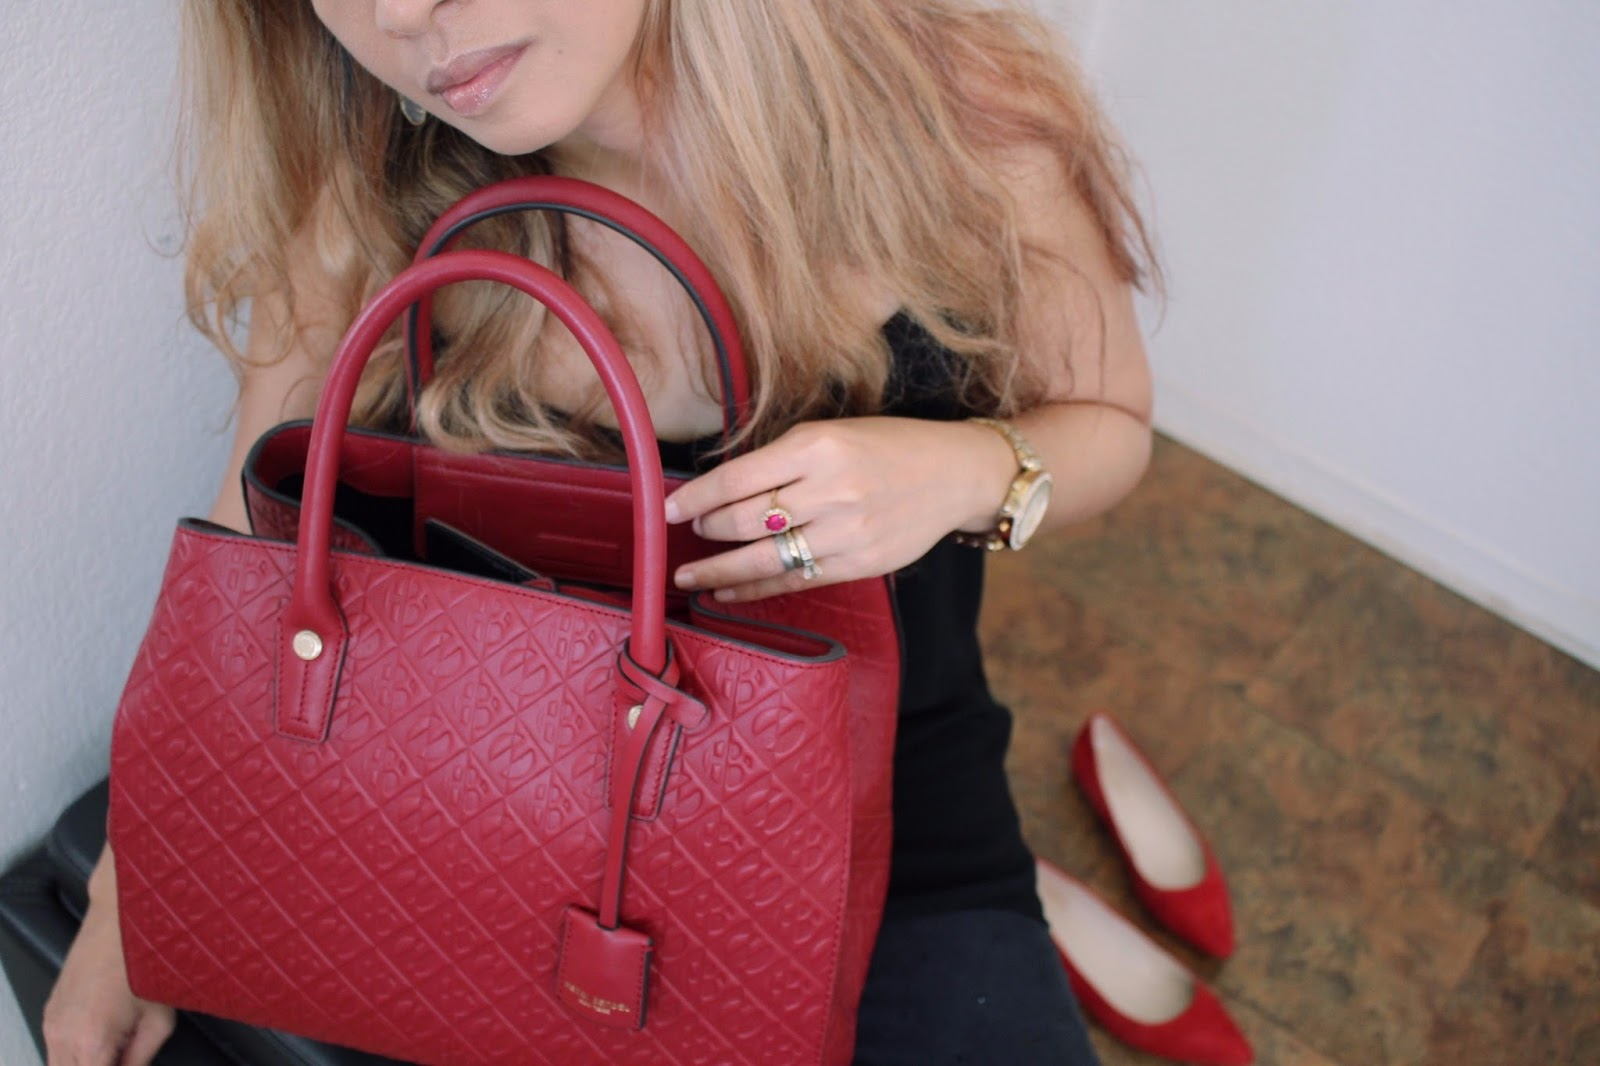 How To Introduce Red To Your Black Wardrobe, Henri Bendel Empire Tote